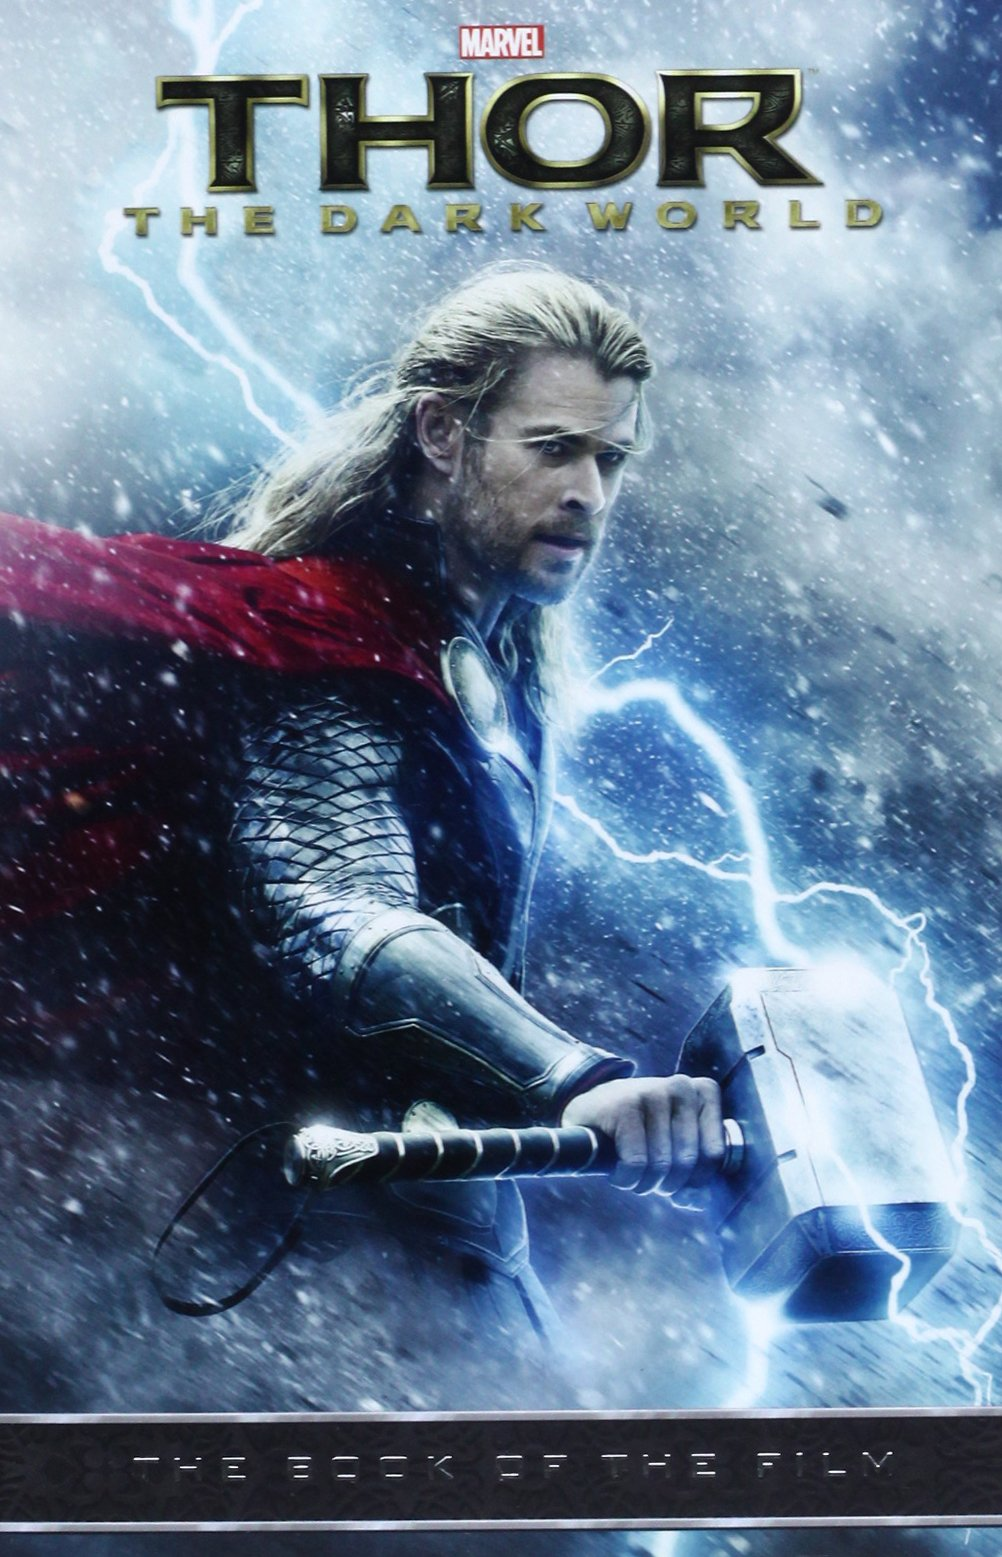 Marvel Thor 2: The Dark World Book of the Film